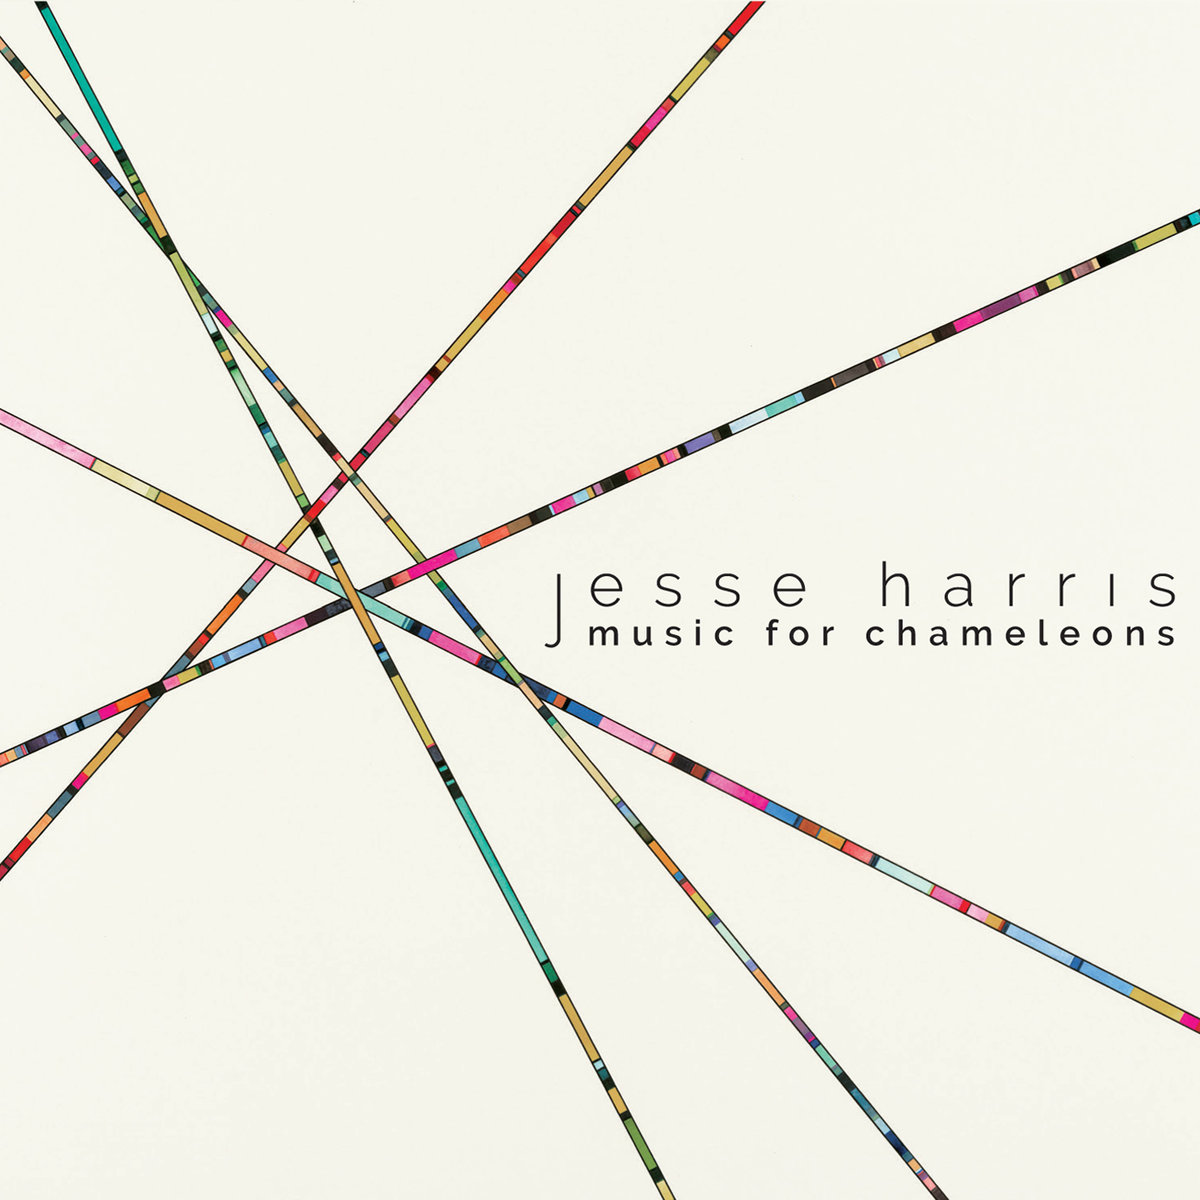 Music for Chameleons-Jesse Harris.jpg